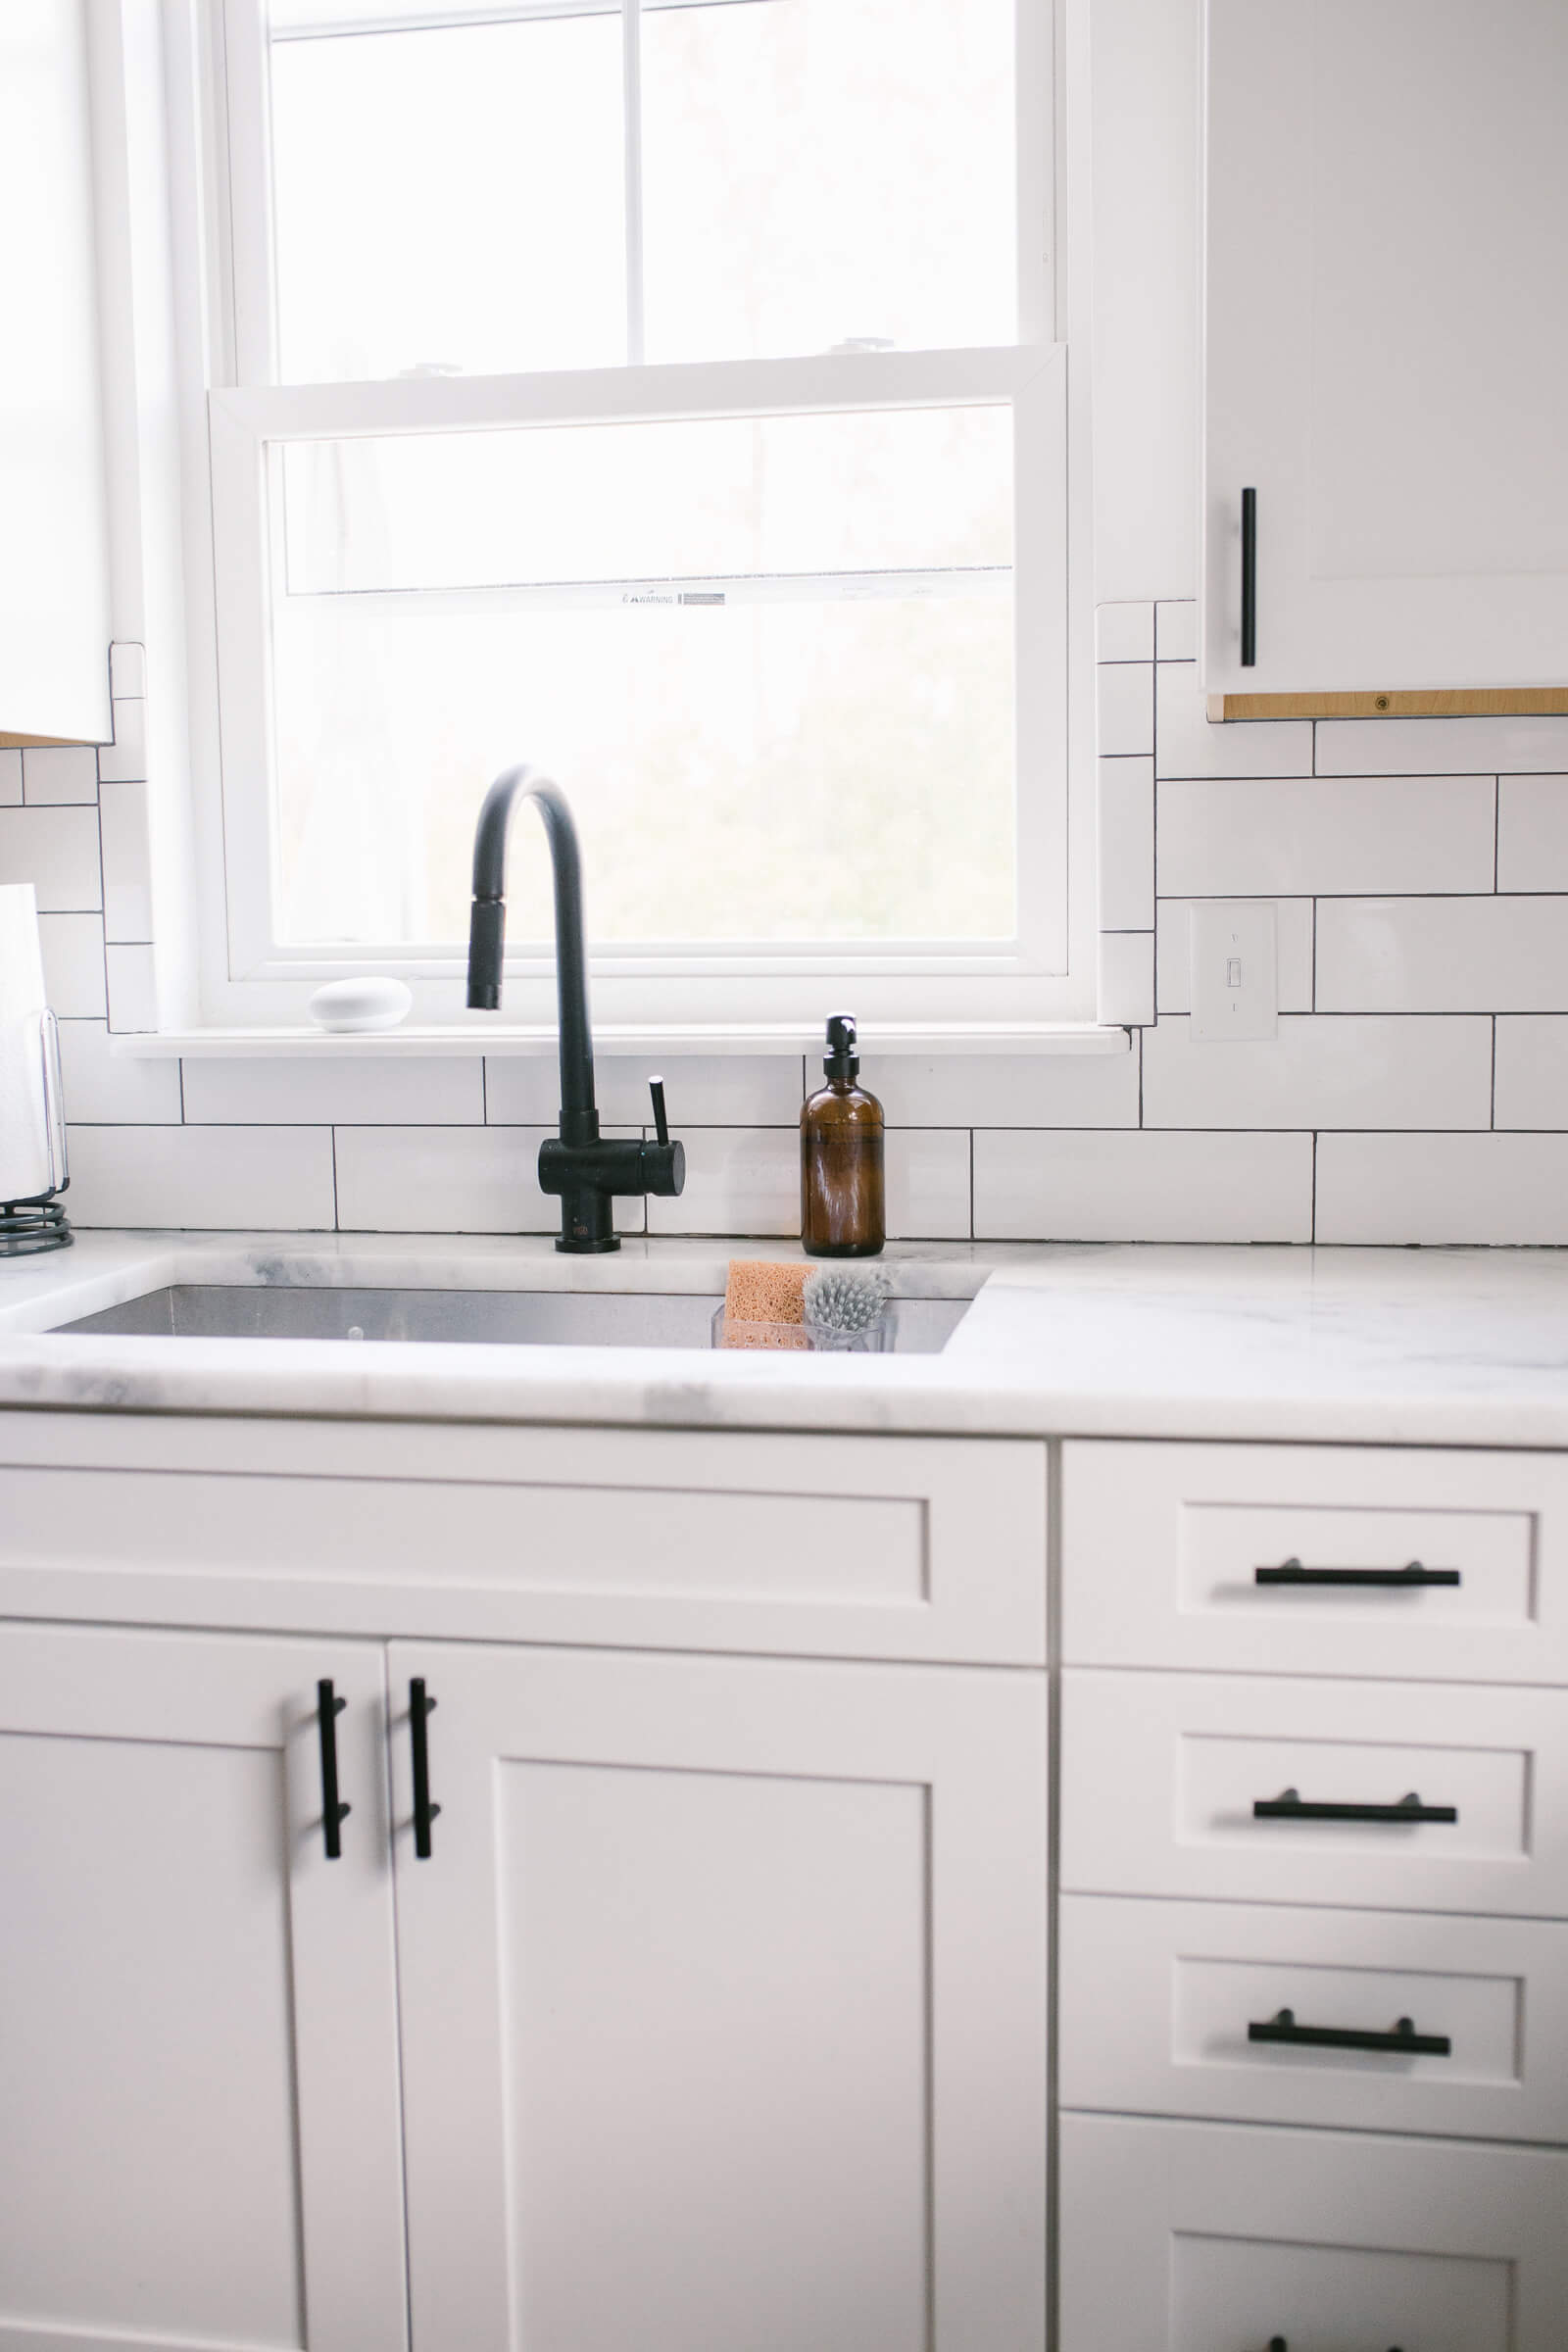 white kitchen with black faucet and stainless steel sink